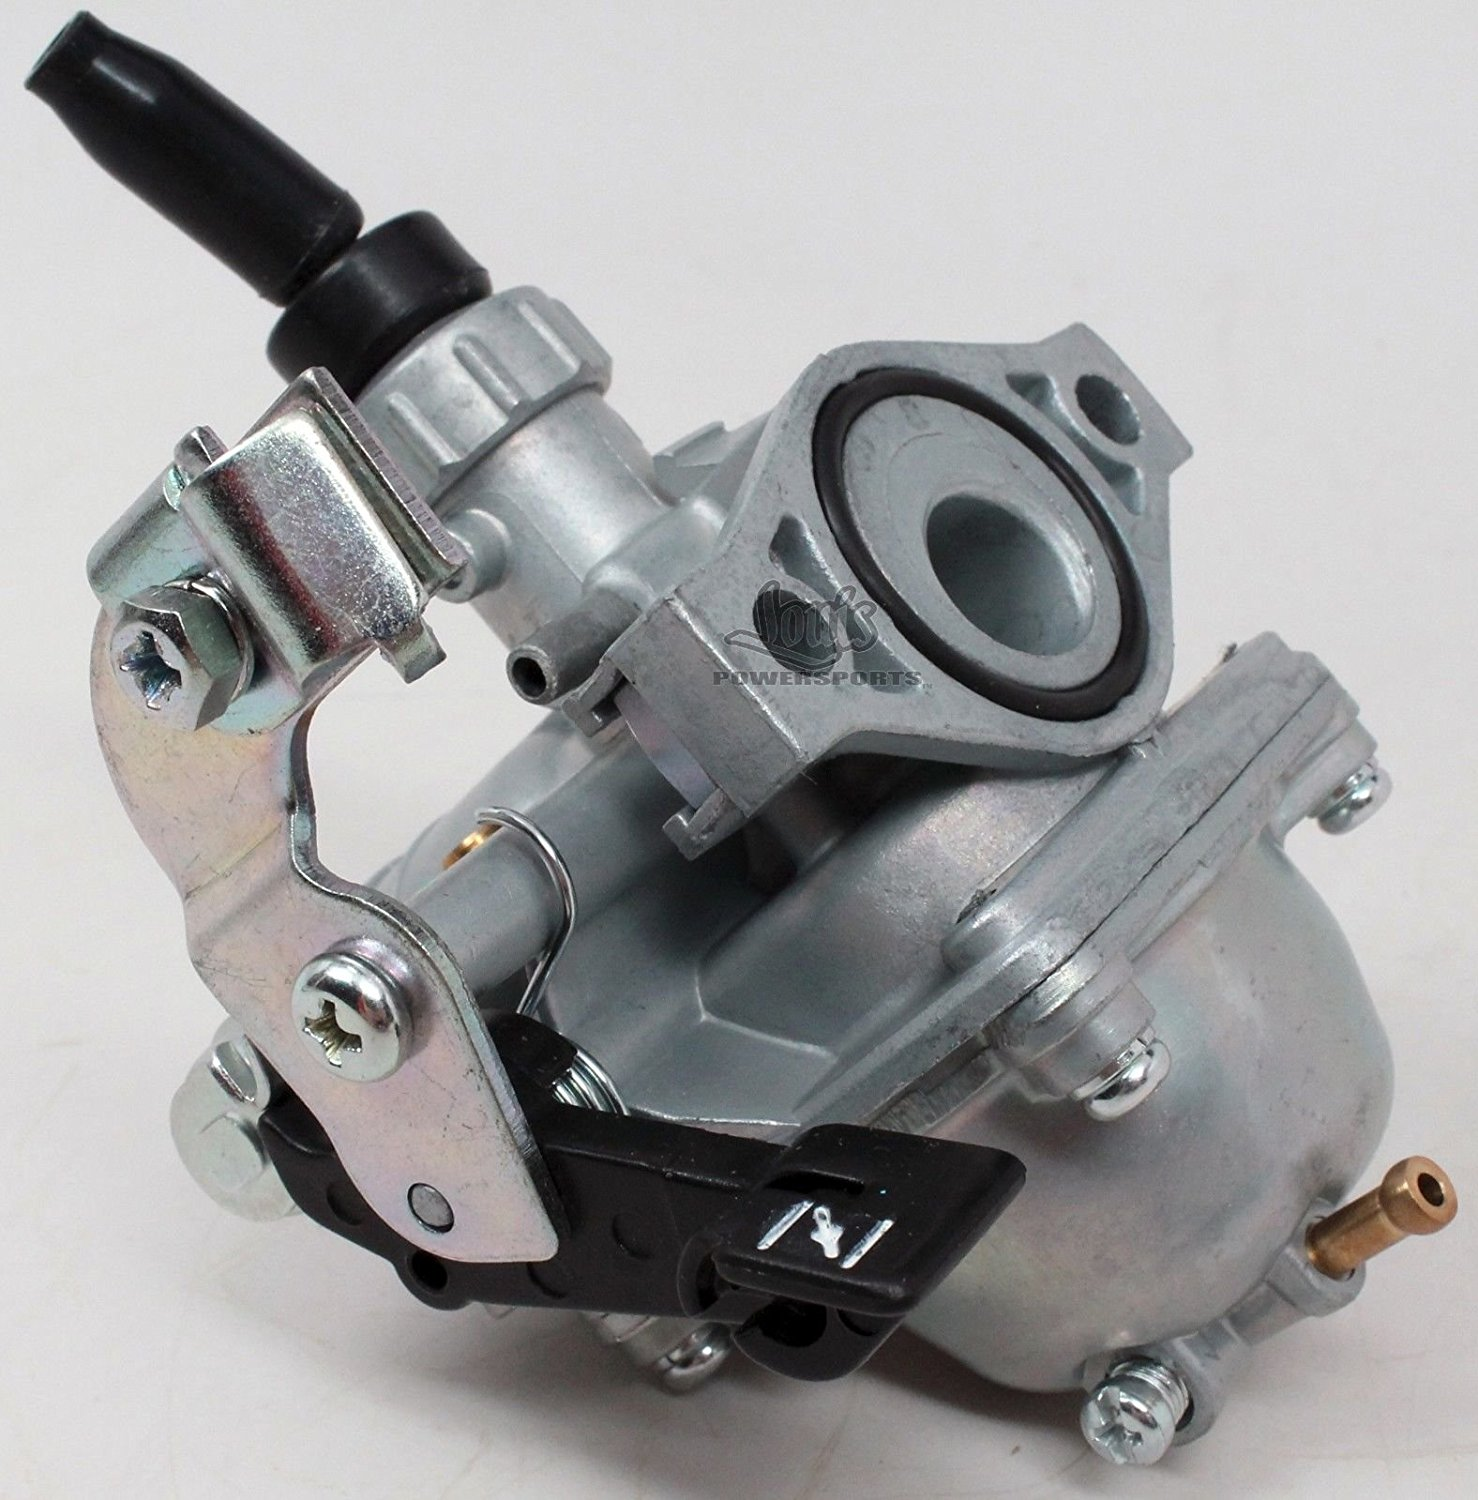 Polaris 2007-2014 Outlaw Predator 50 Youth ATV Carburetor Assembly 0454773 New OEM